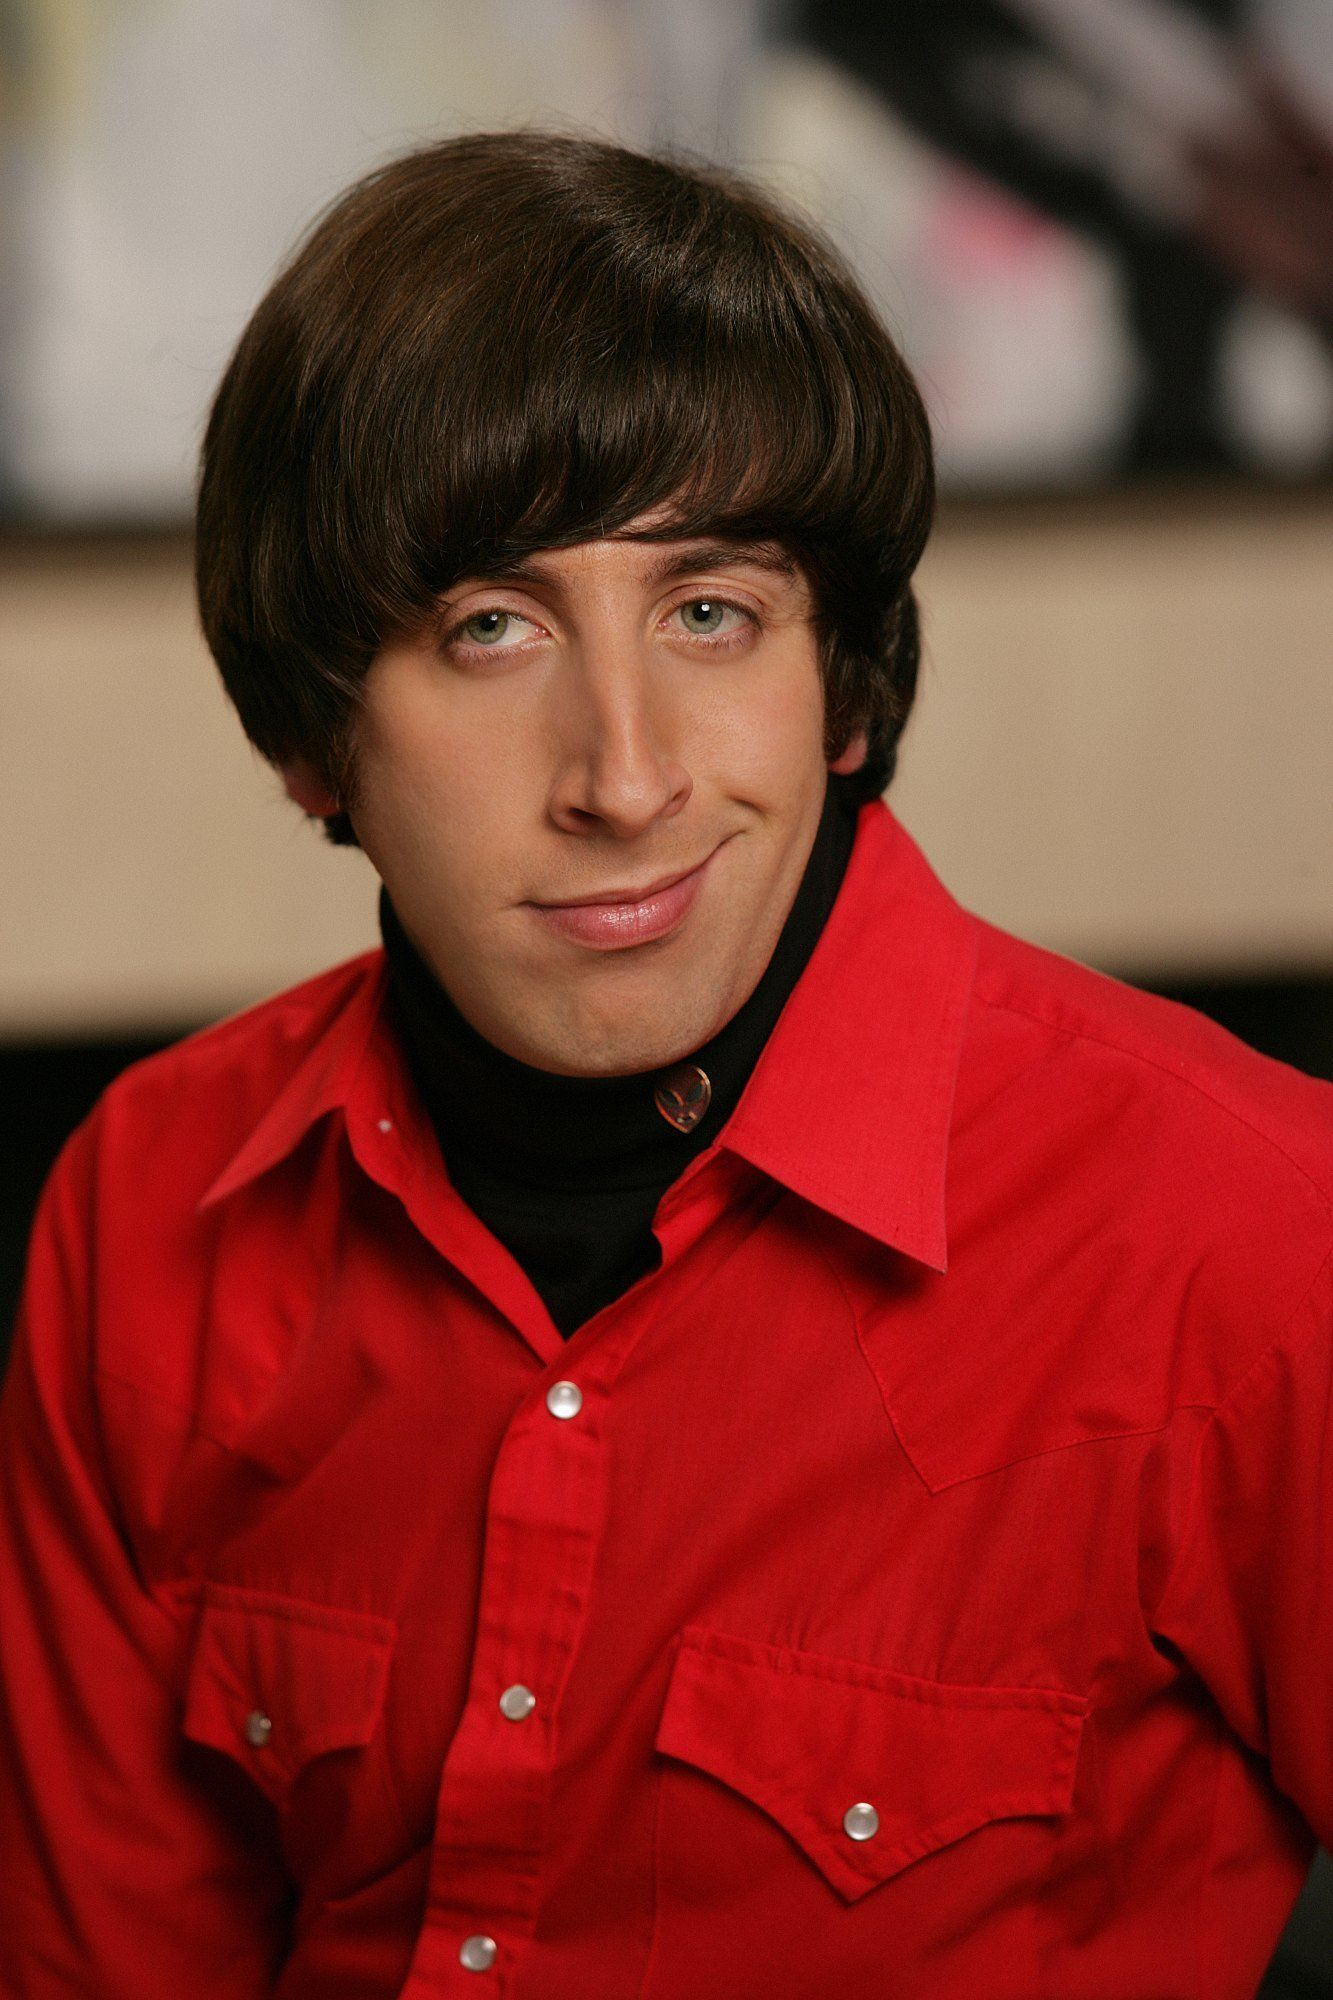 LOS ANGELES - FEBRUARY 15:  Simon Helberg stars in THE BIG BANG THEORY on the CBS Television Network. (Robert Voets/CBS via Getty Images)